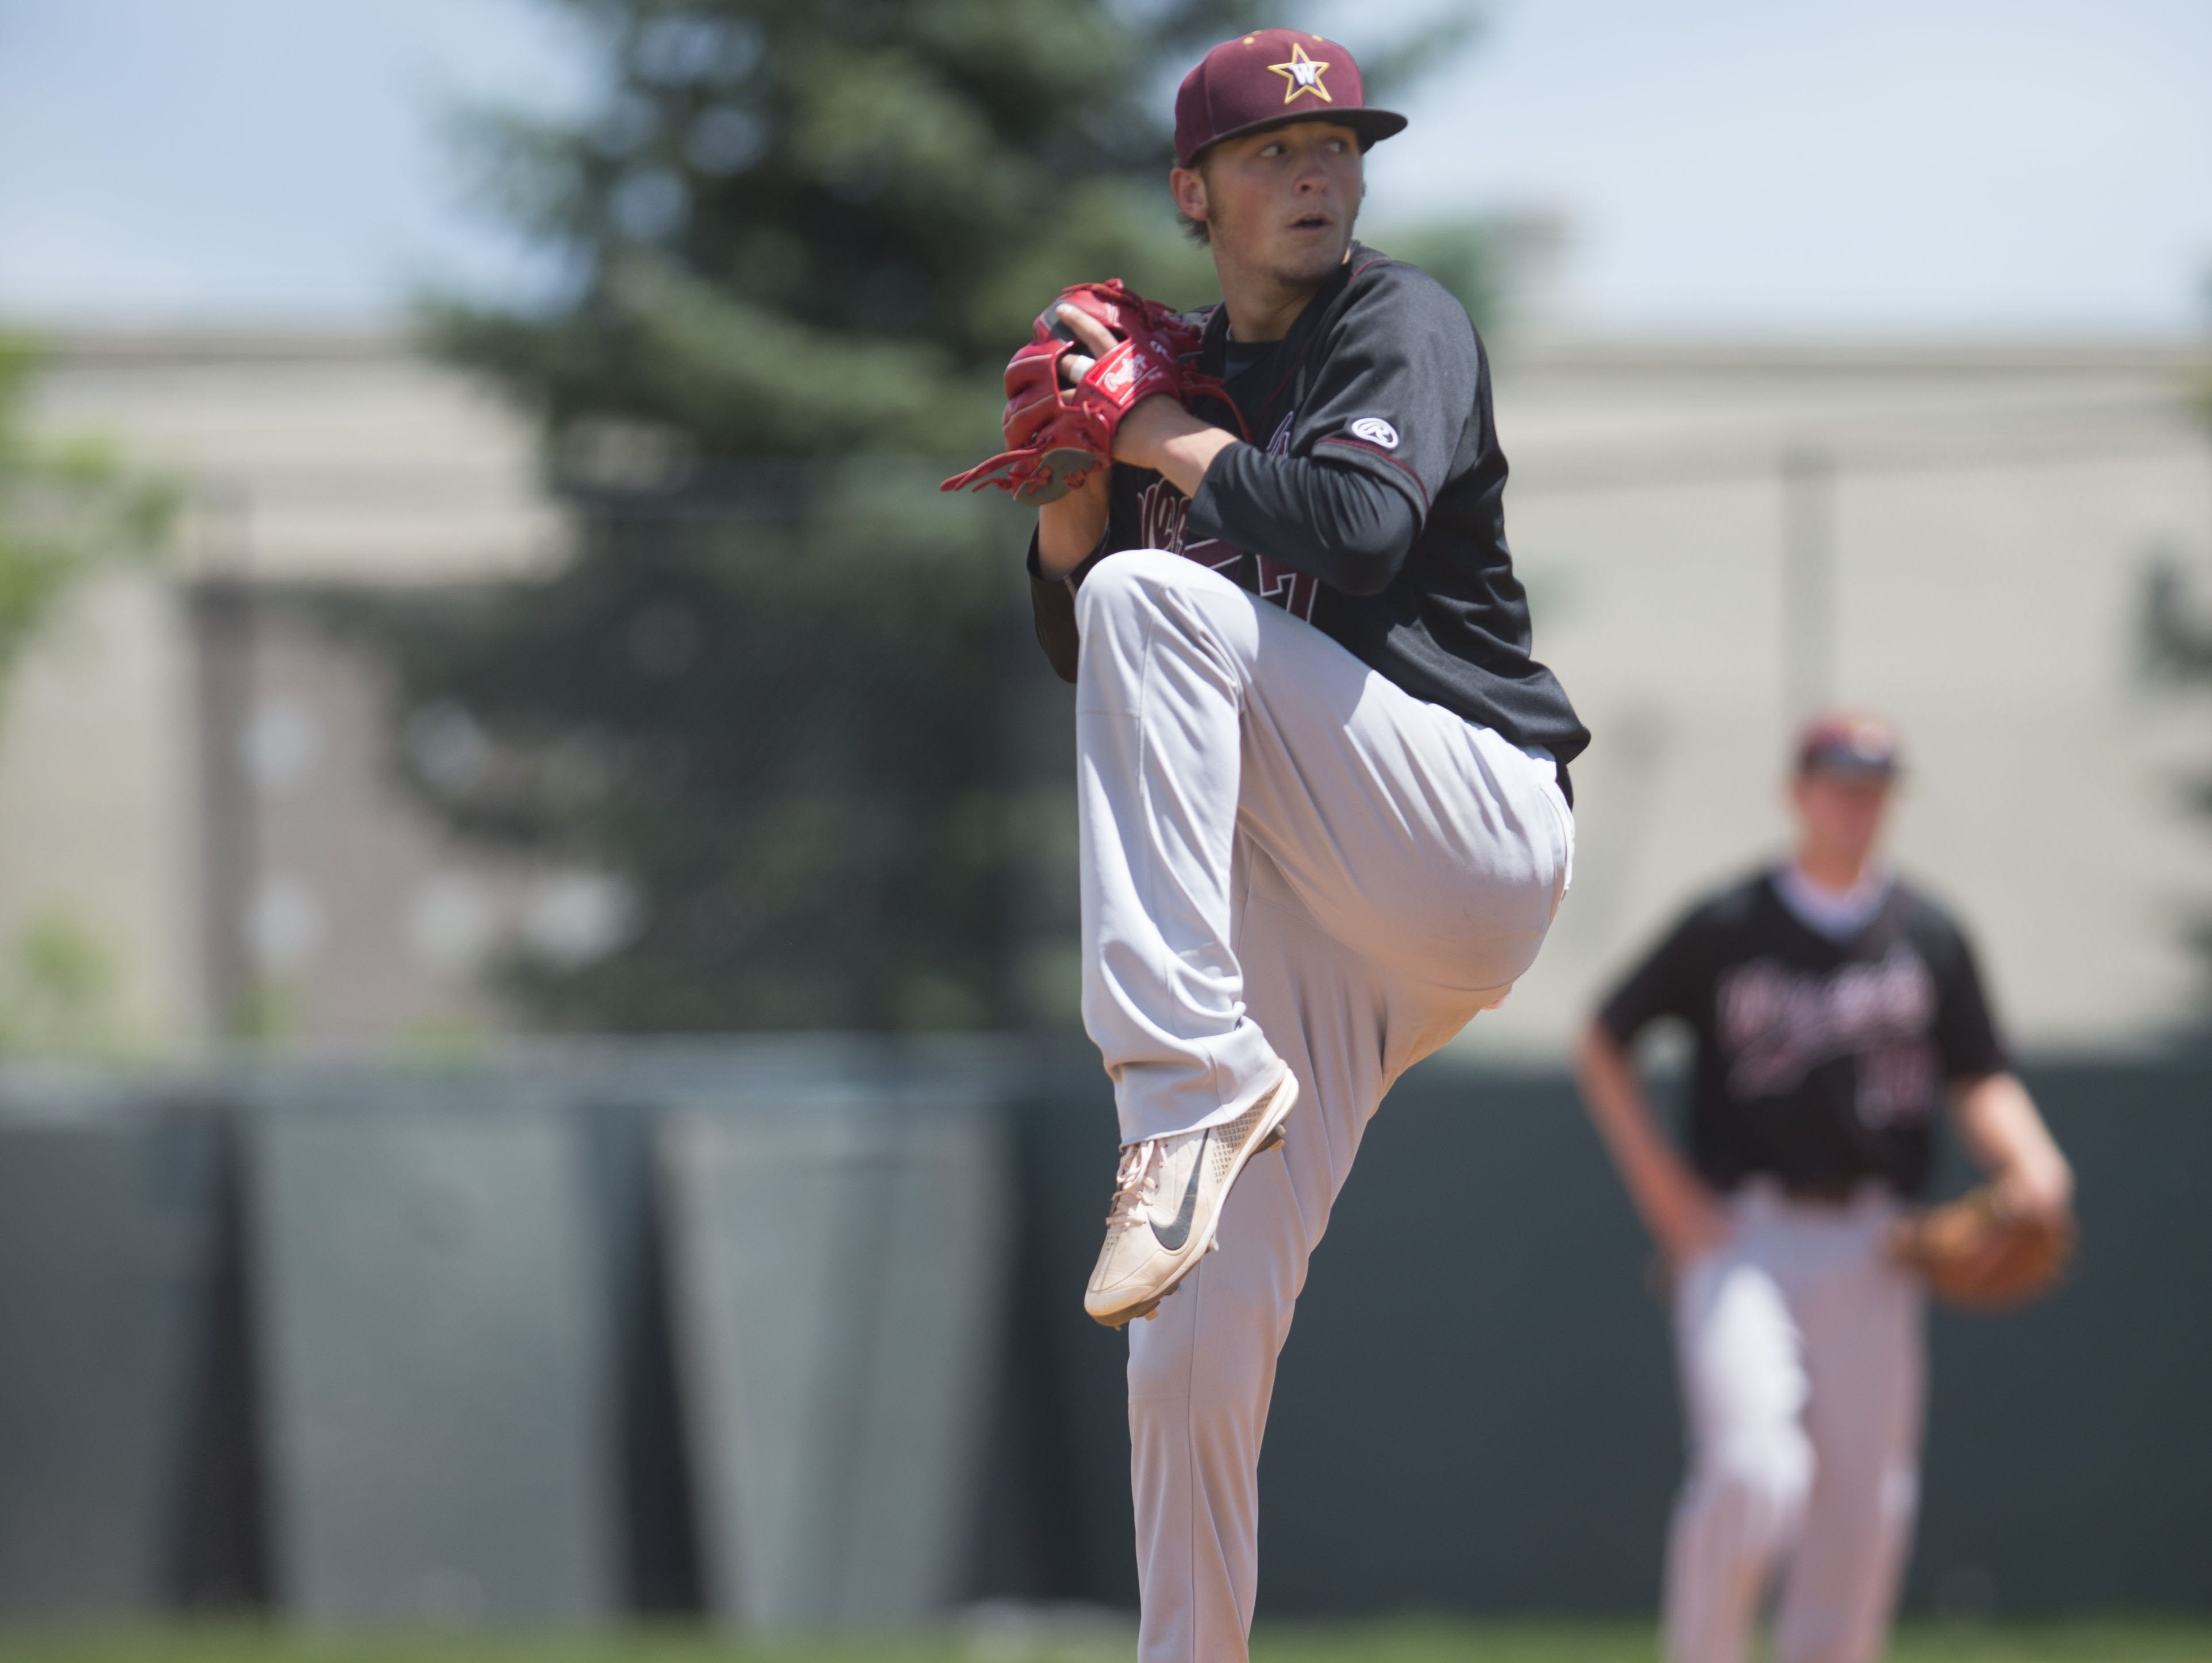 Windsor graduate Jake Greenwalt has signed with the Giants after being drafted by San Francisco last week.